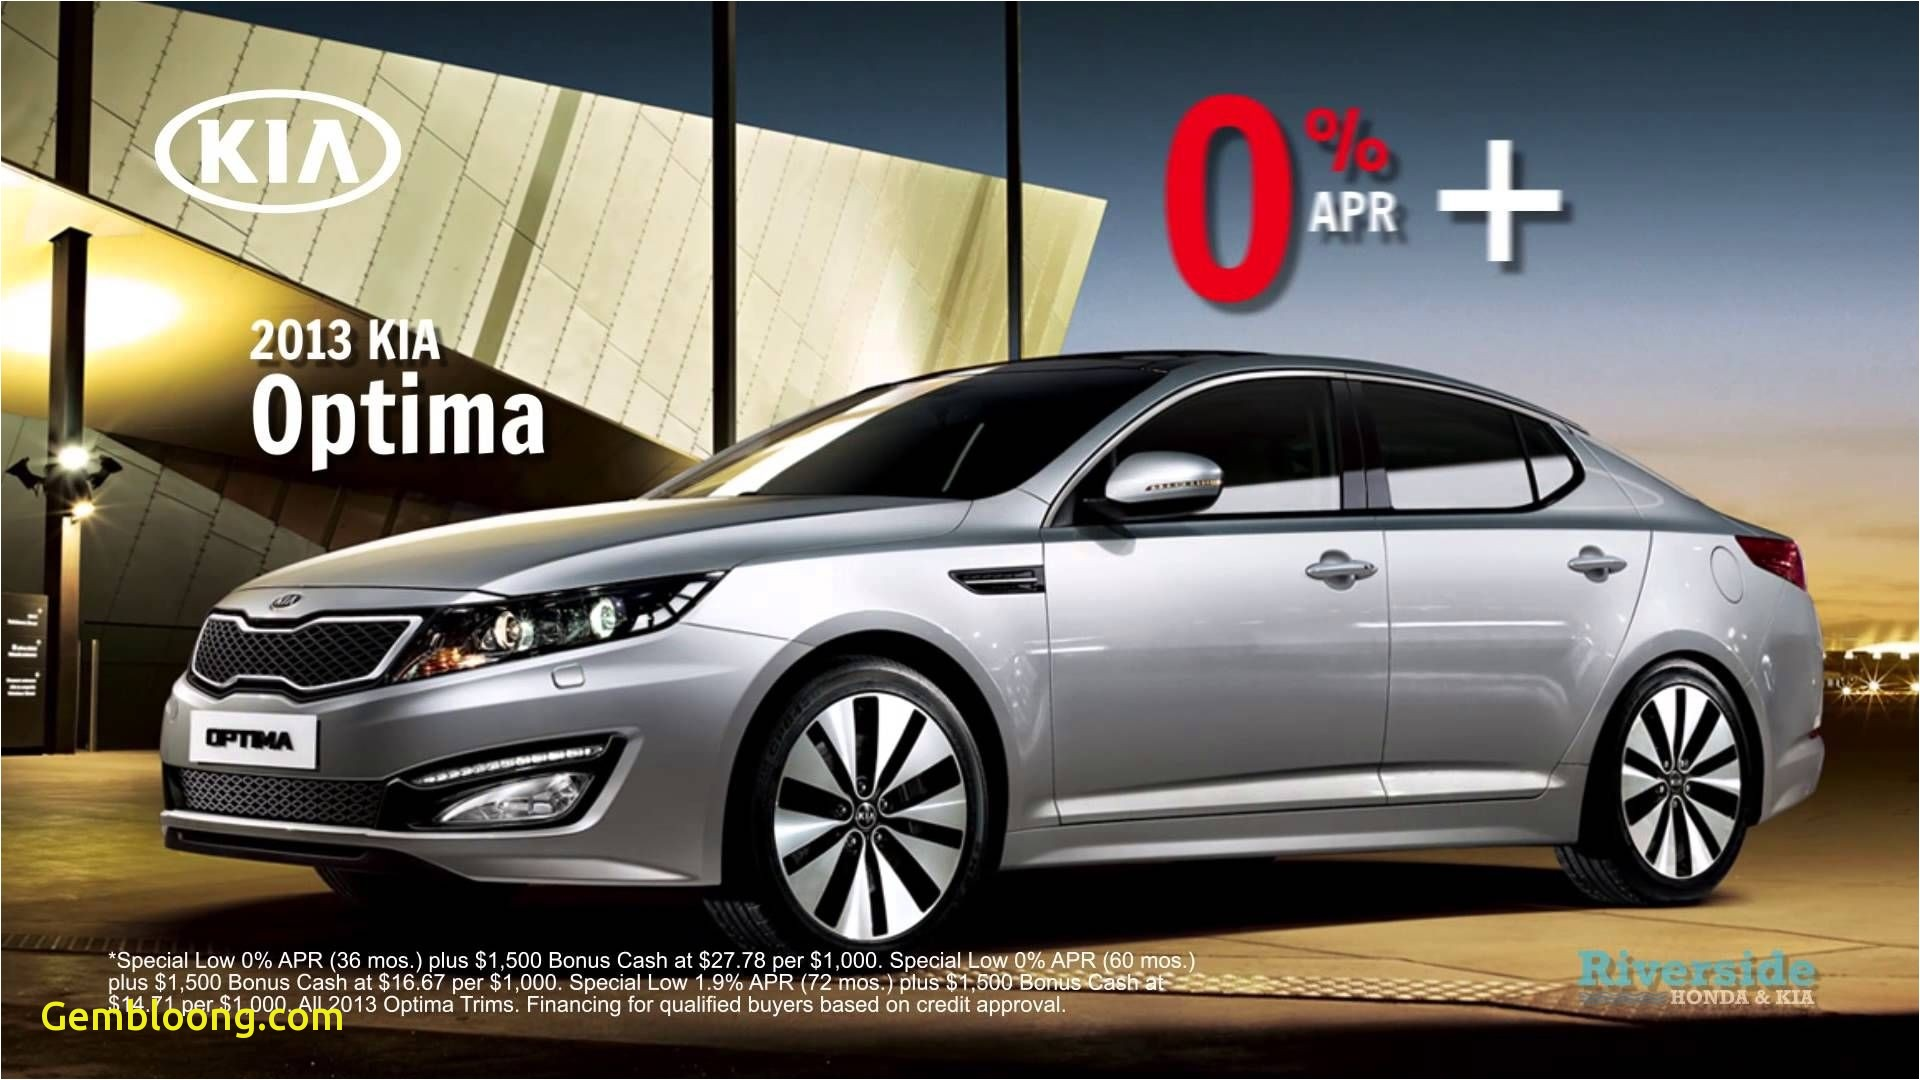 kia dealership near me near miami lakes fl 2016 kia optima auto dealers